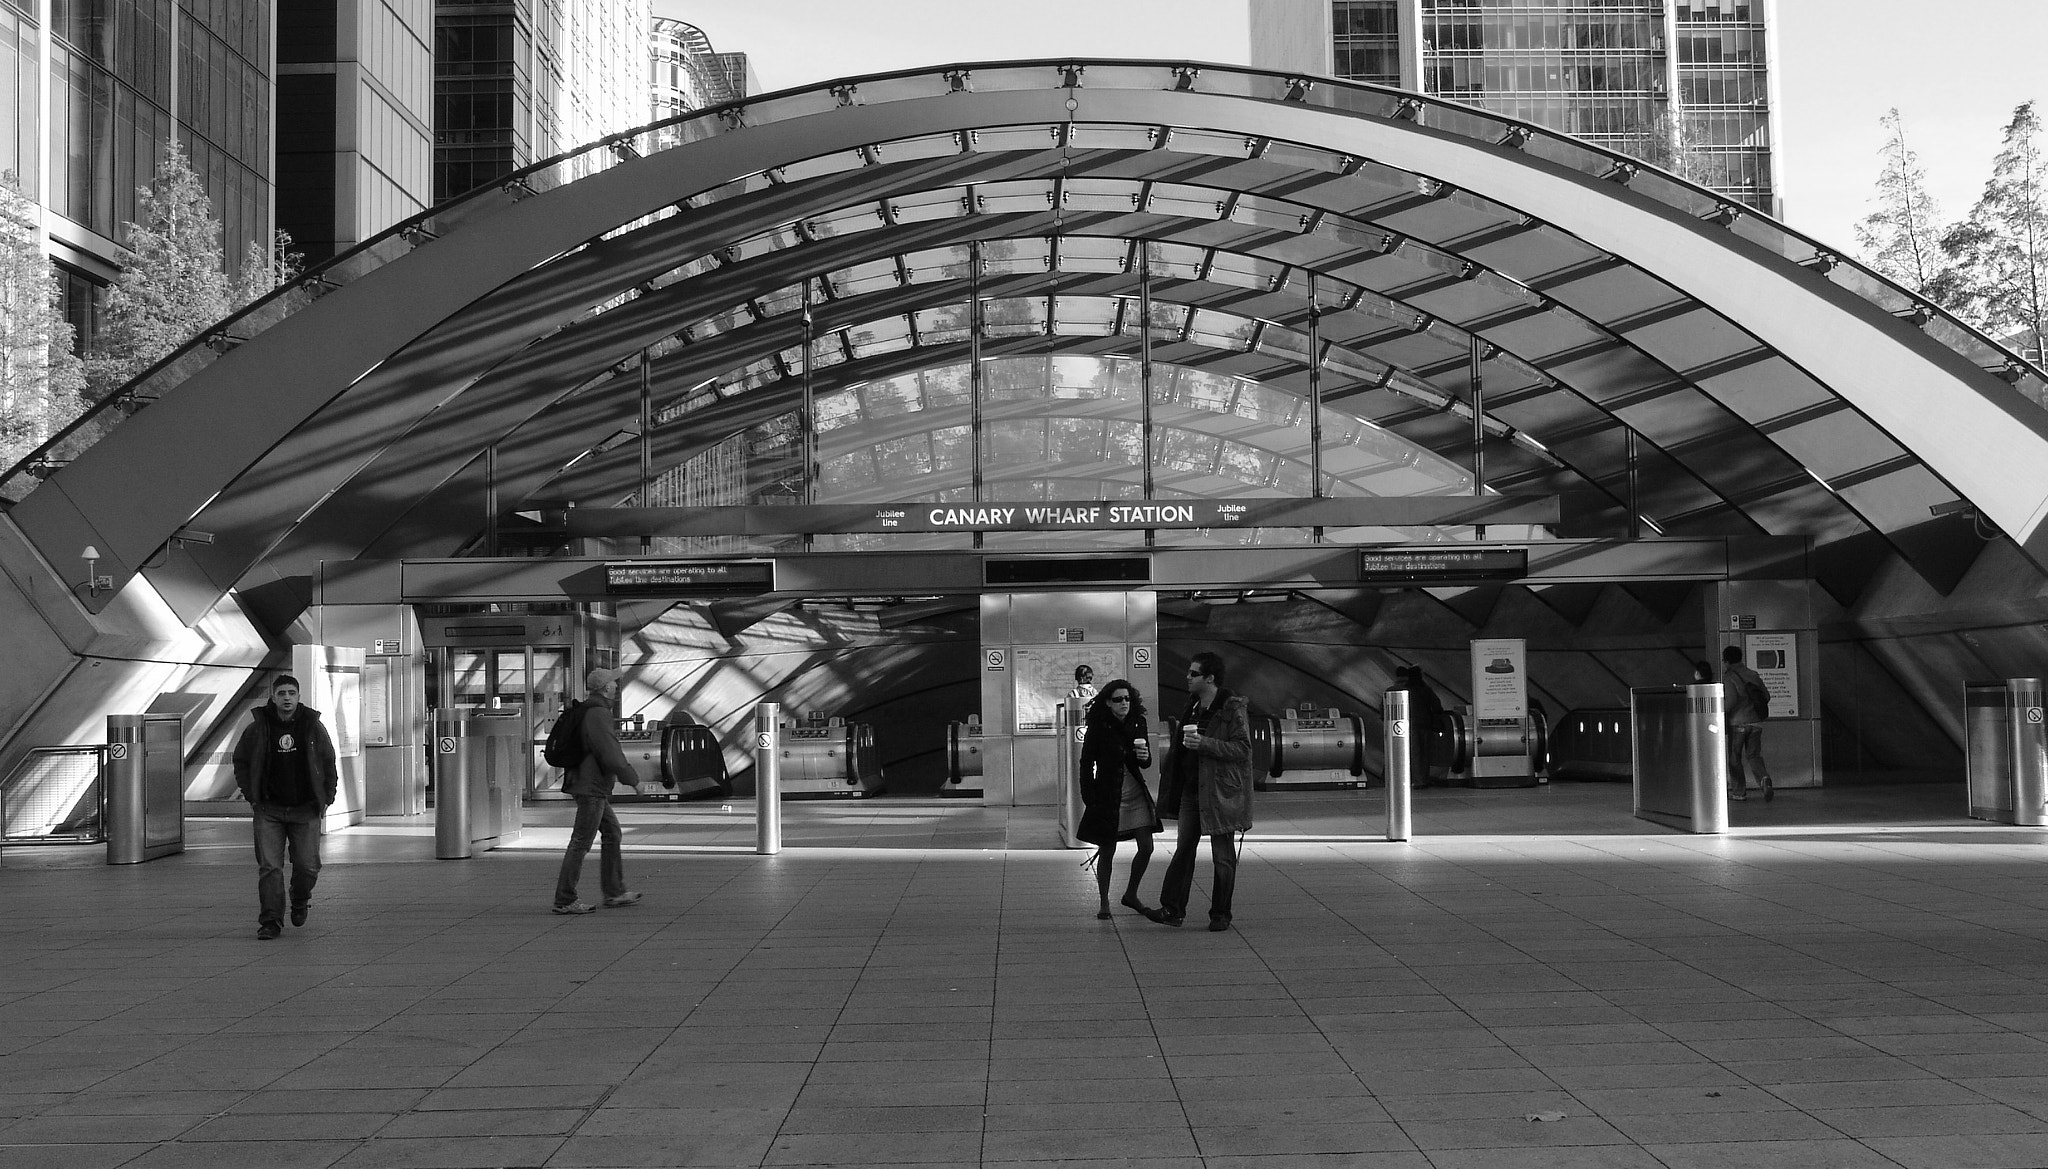 Photograph Canary Wharf Station by Jarek Stroka on 500px